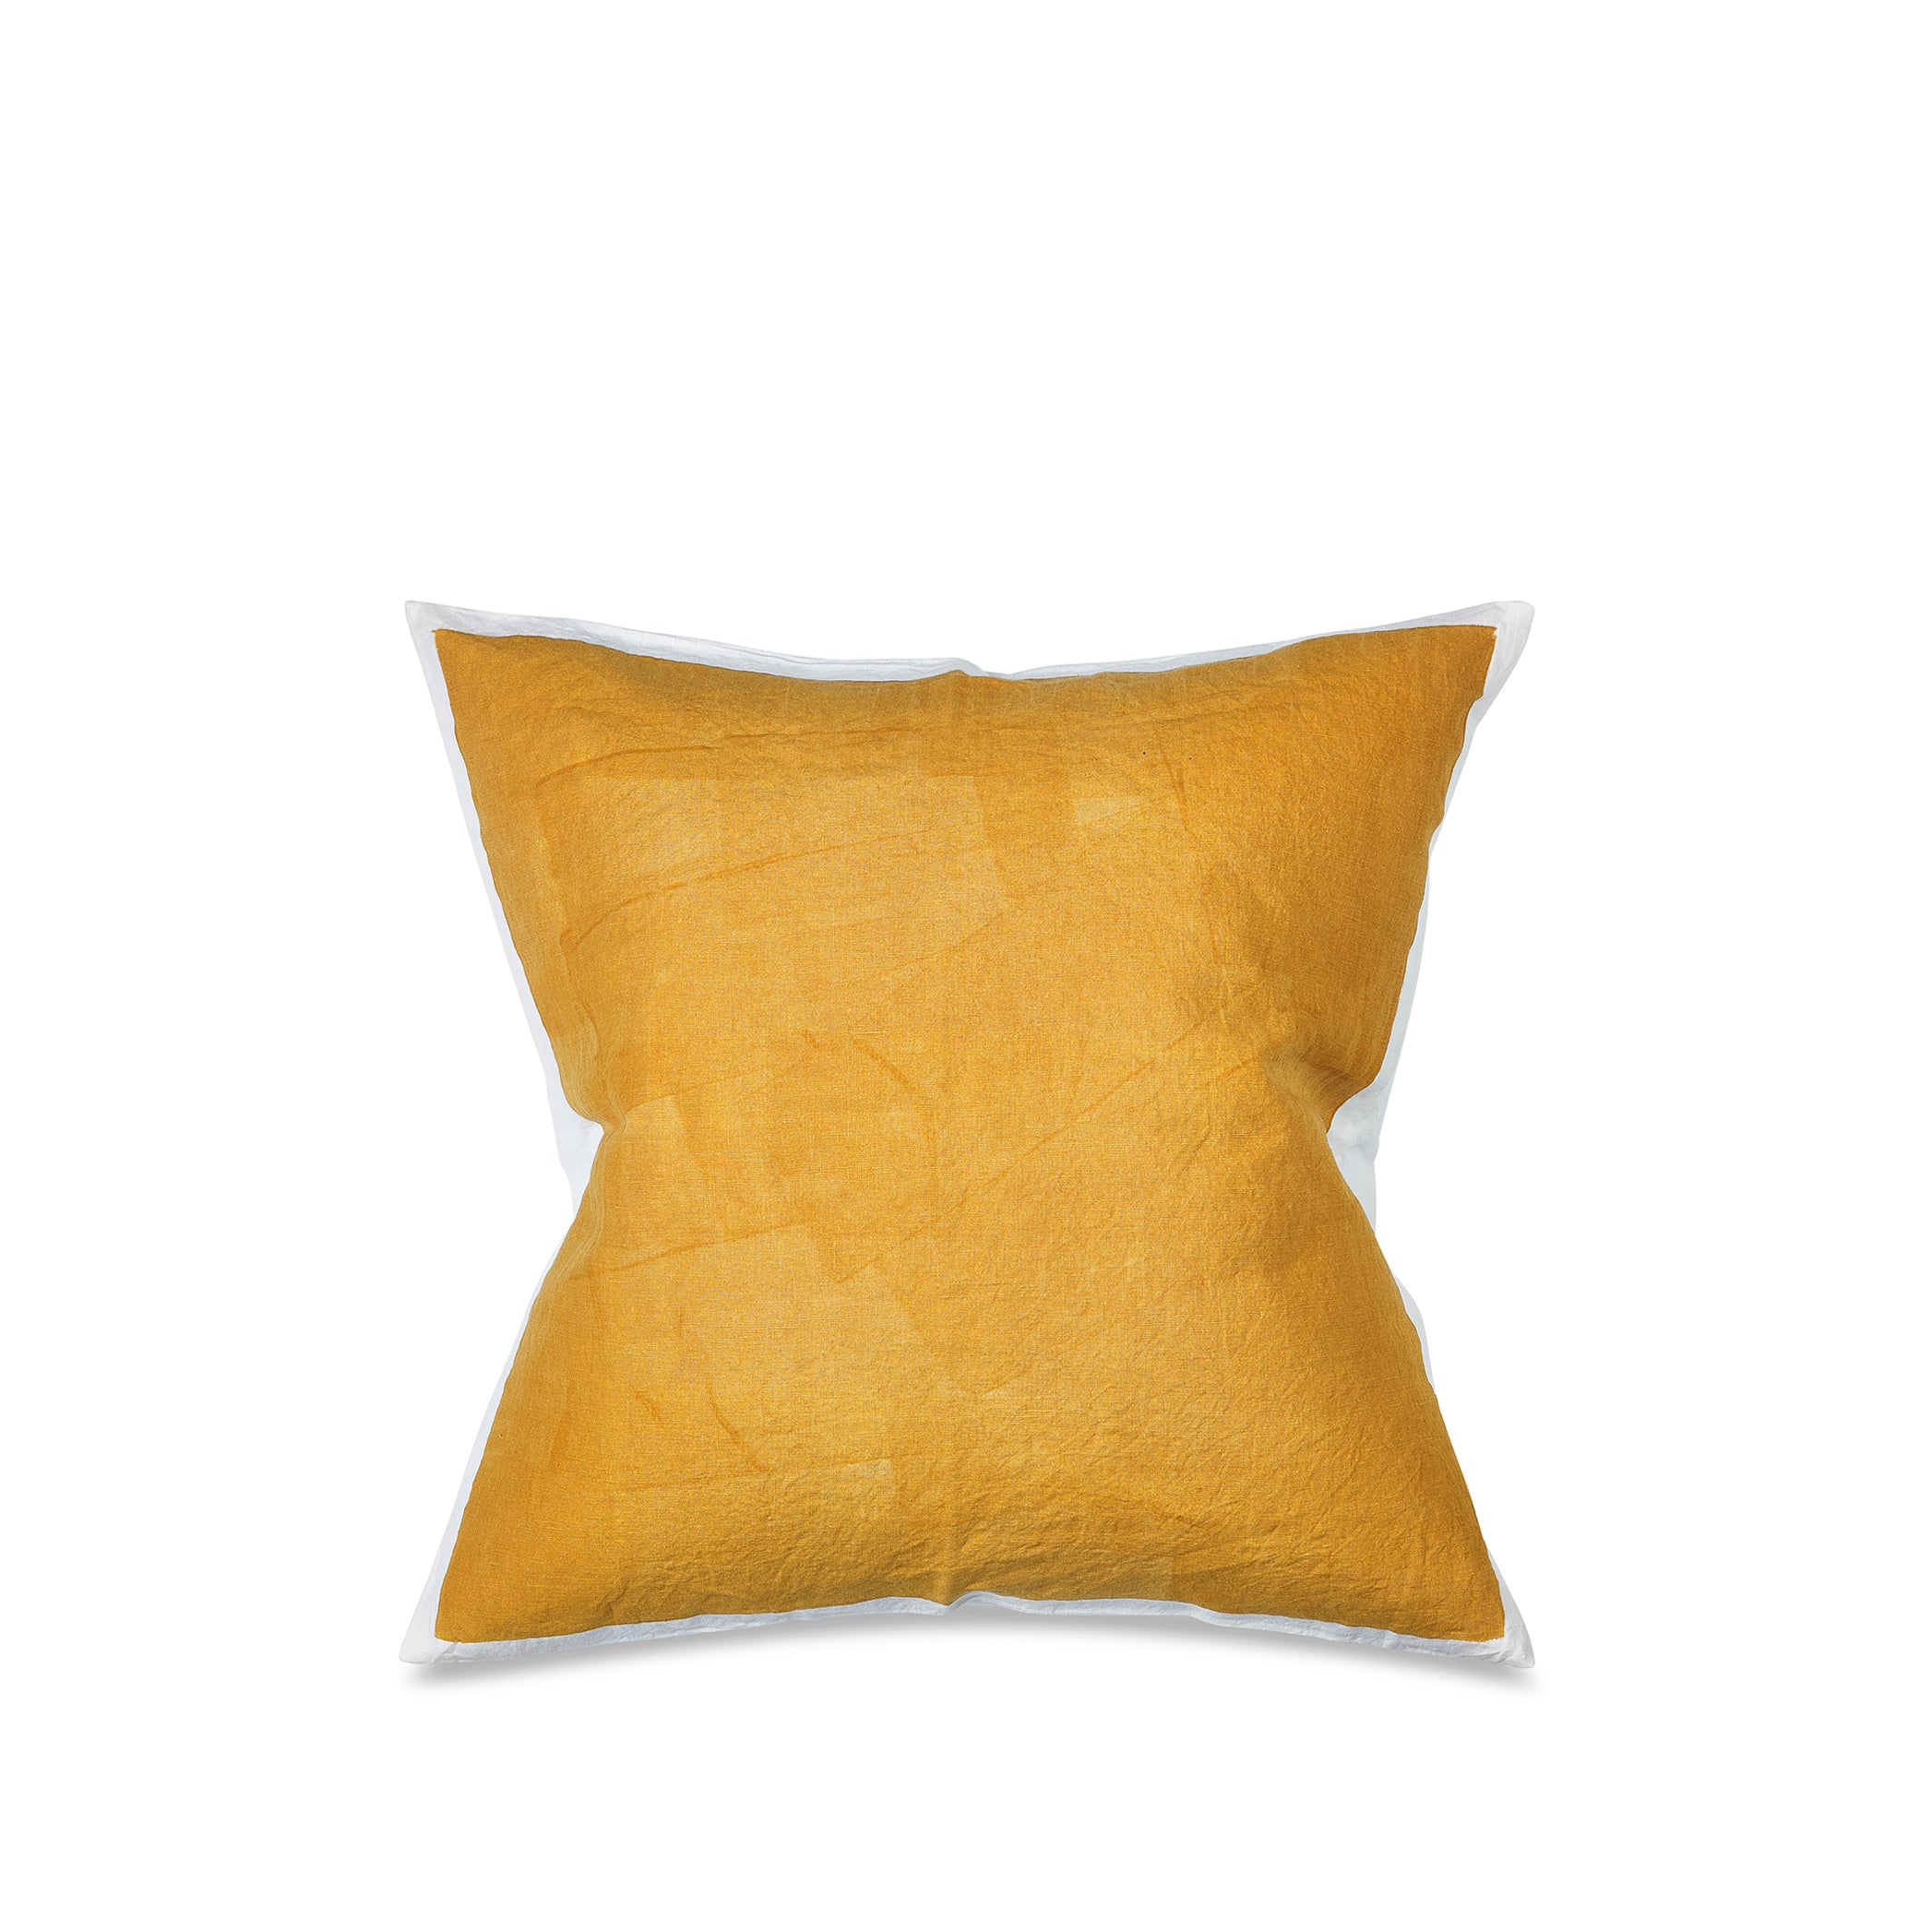 Hand Painted Linen Cushion Cover in Mustard Yellow, 60cm x 60cm